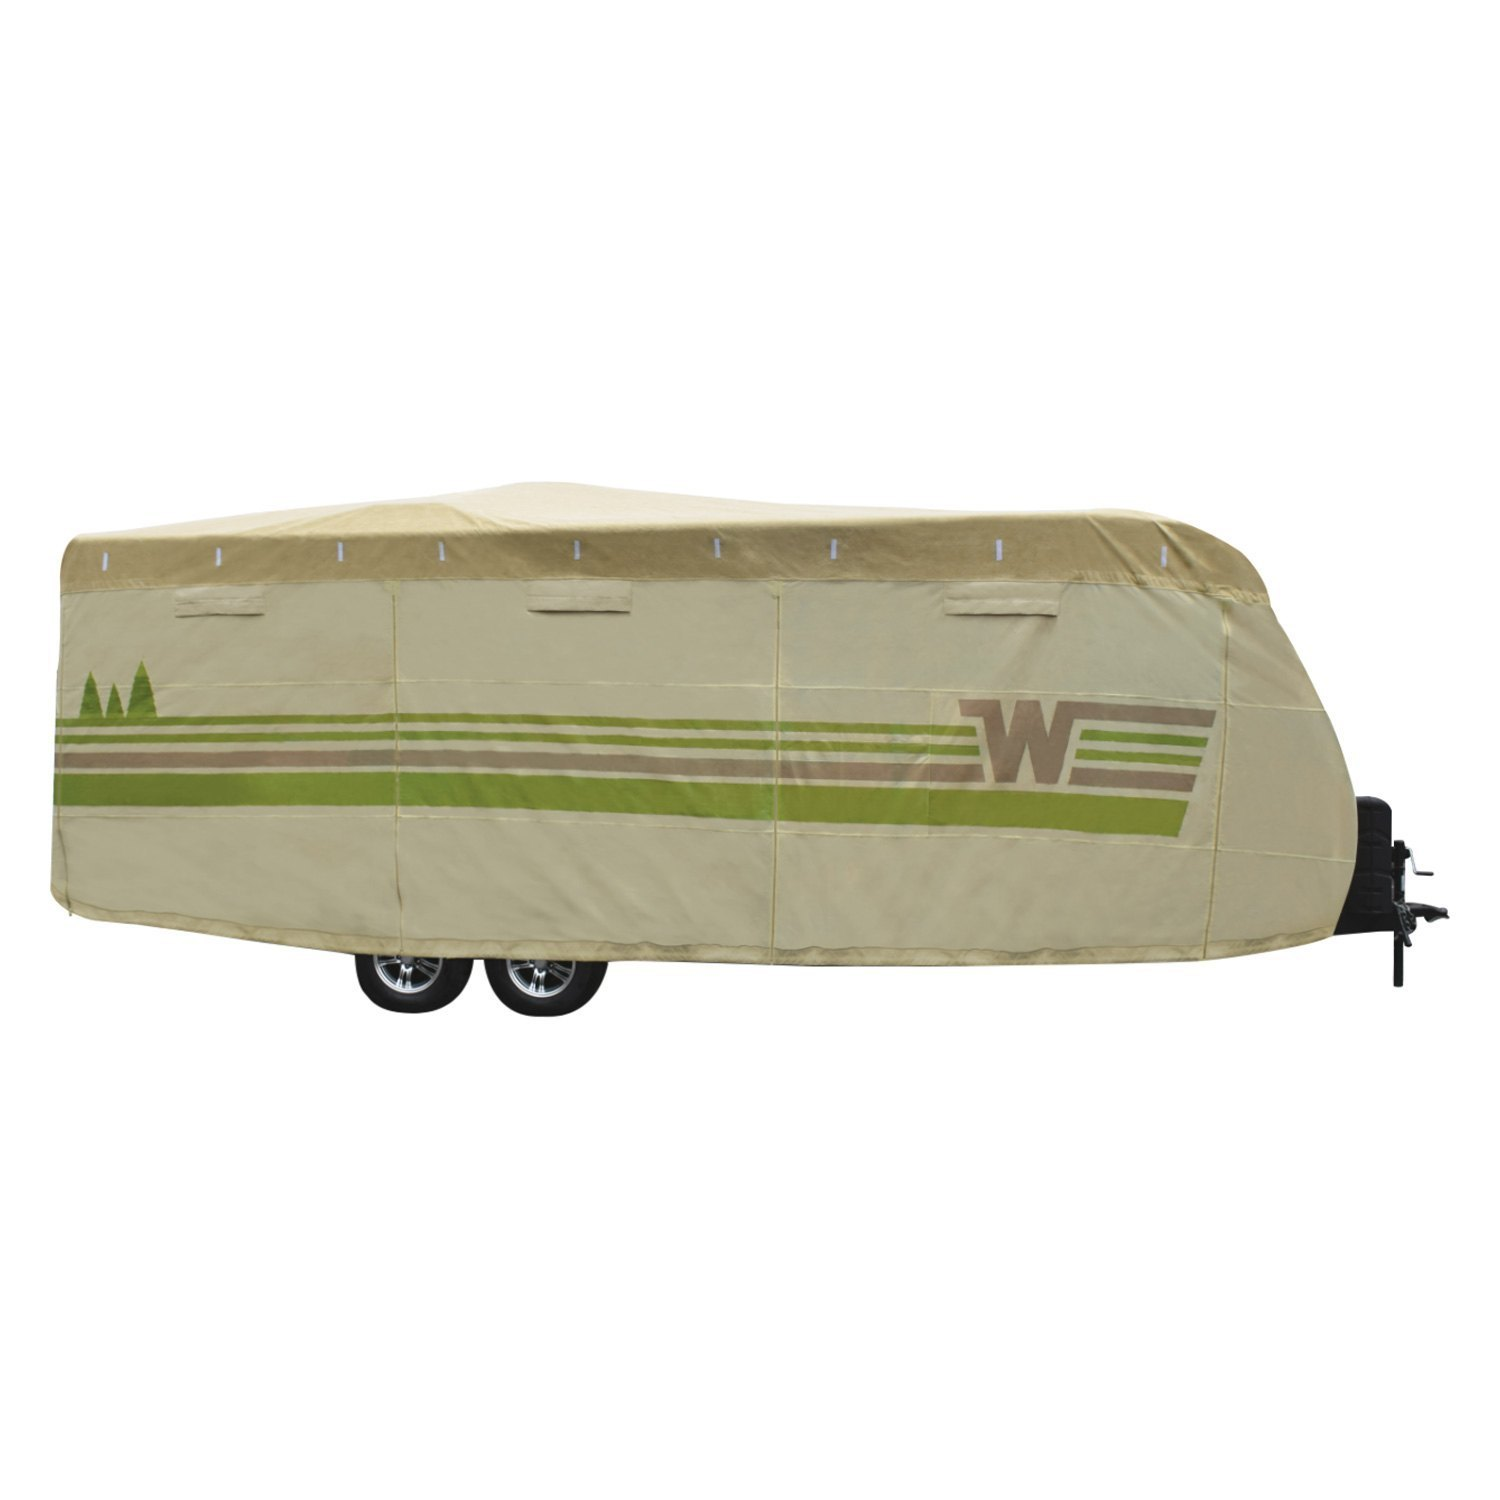 Brilliant Camco 45712 RV 2639 ULTRAShield Class CTravel Trailer Cover 108quotH X